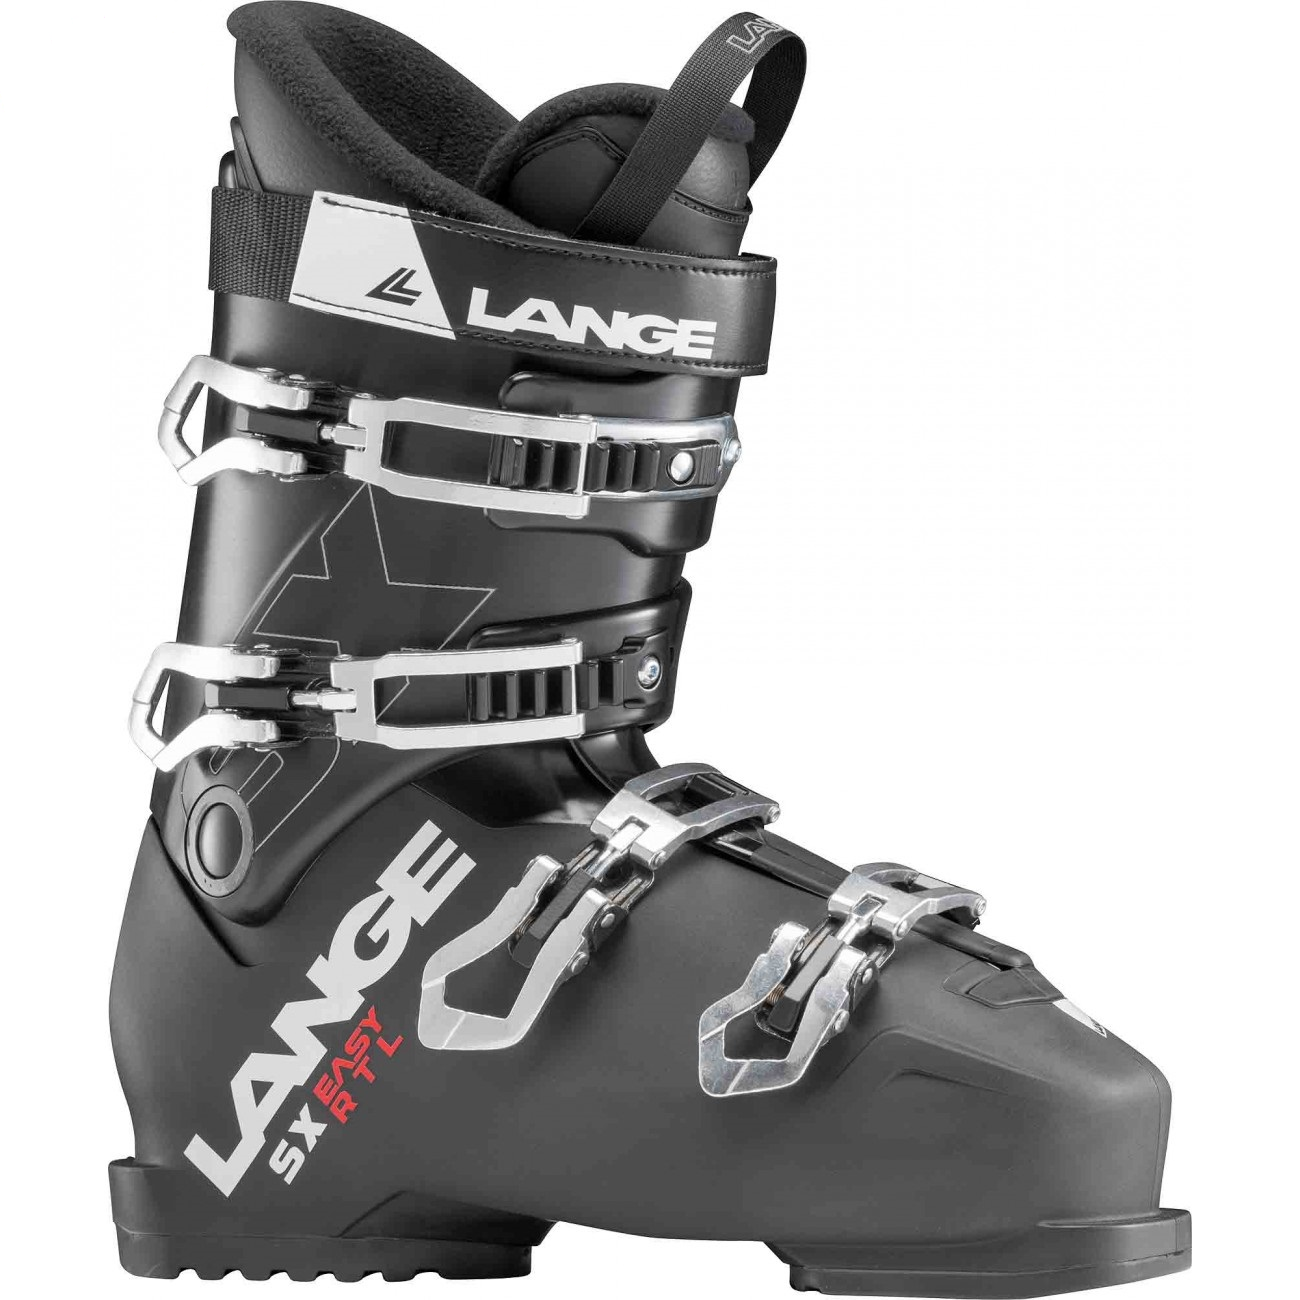 Chaussures de ski Neuves Lange SX RTL Easy Black 2021